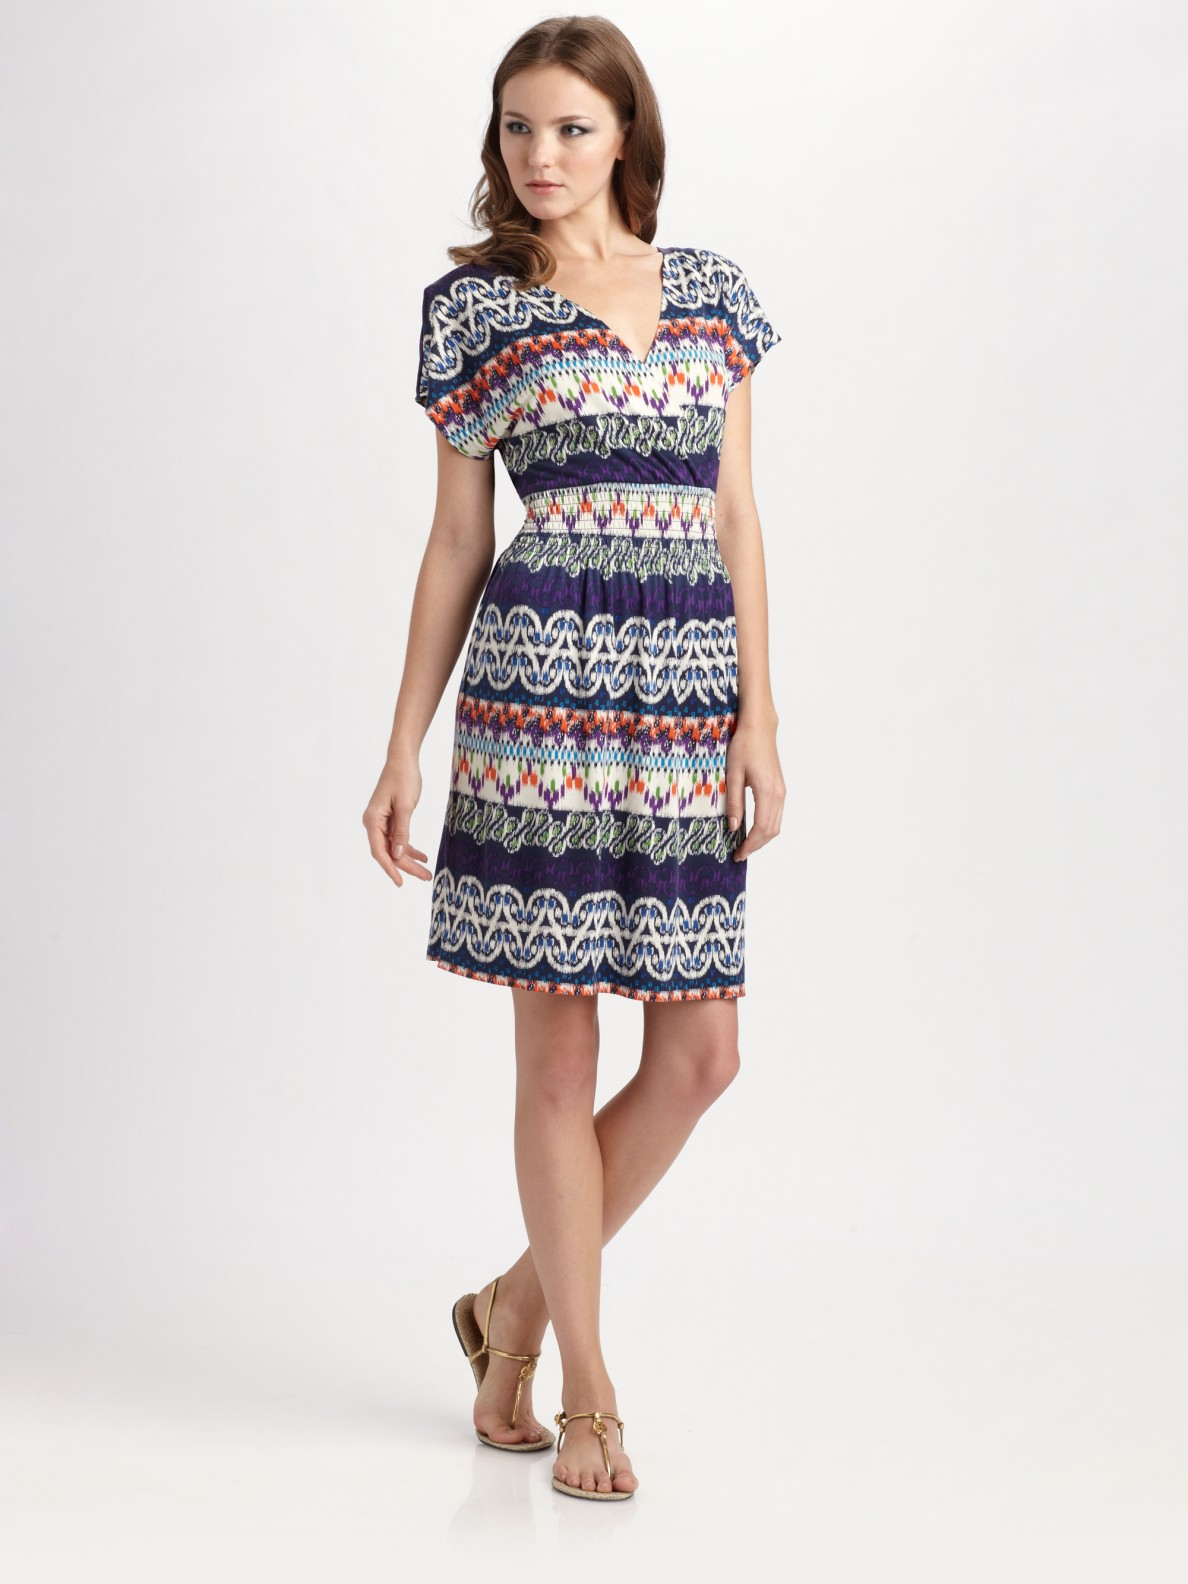 Lyst tory burch printed silk surplice dress in blue for Tory burch fashion island